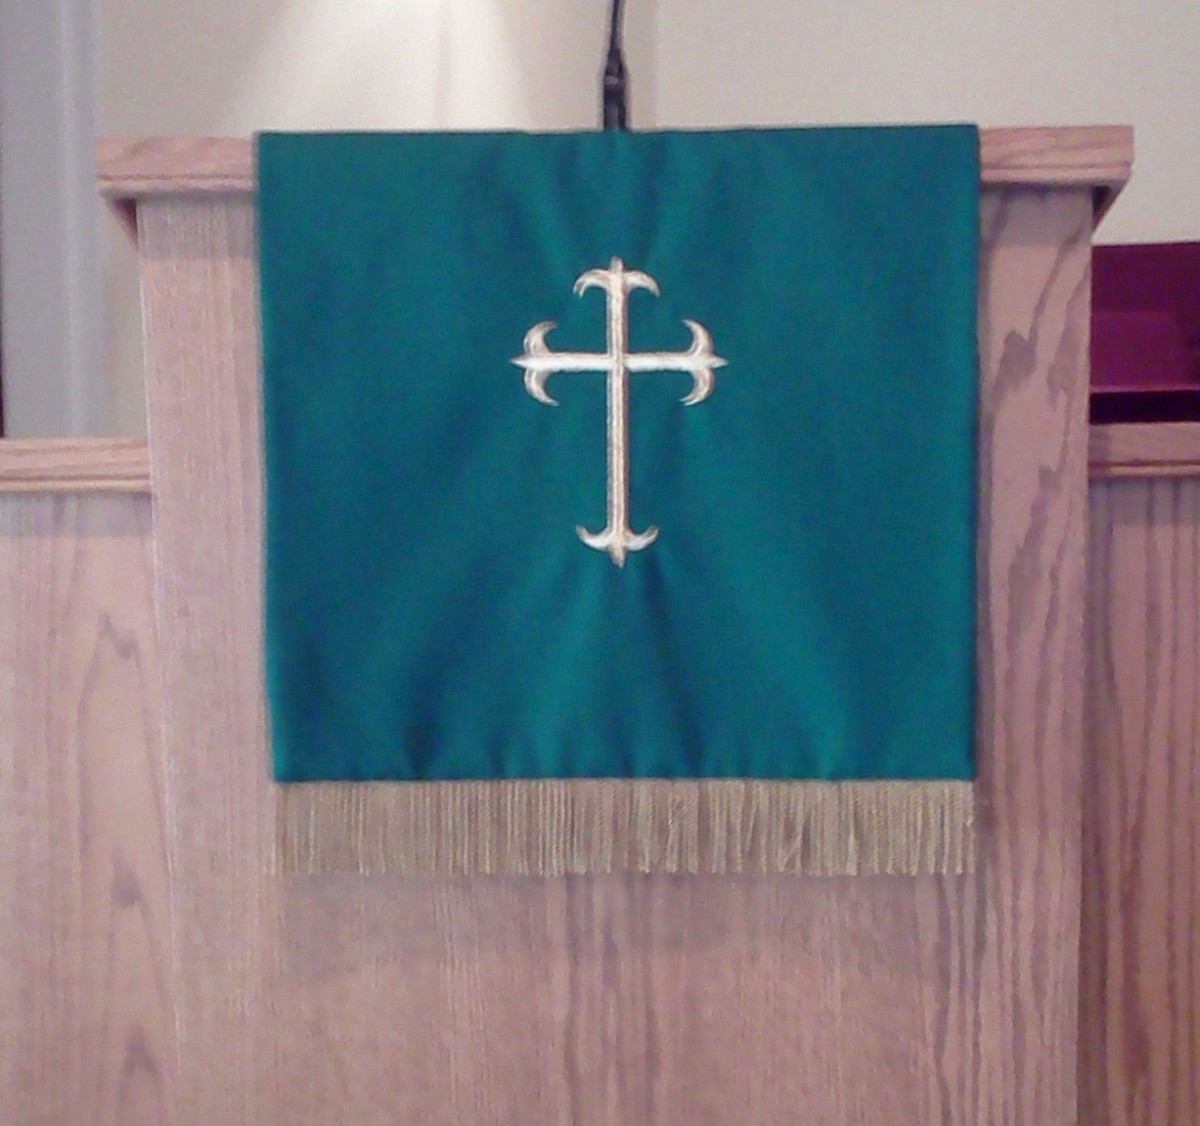 Green is the color of the long Epiphany season that follows Christmastide. This photo was also taken at our former church, Community United Methodist, in Fruitland Park, Florida, USA